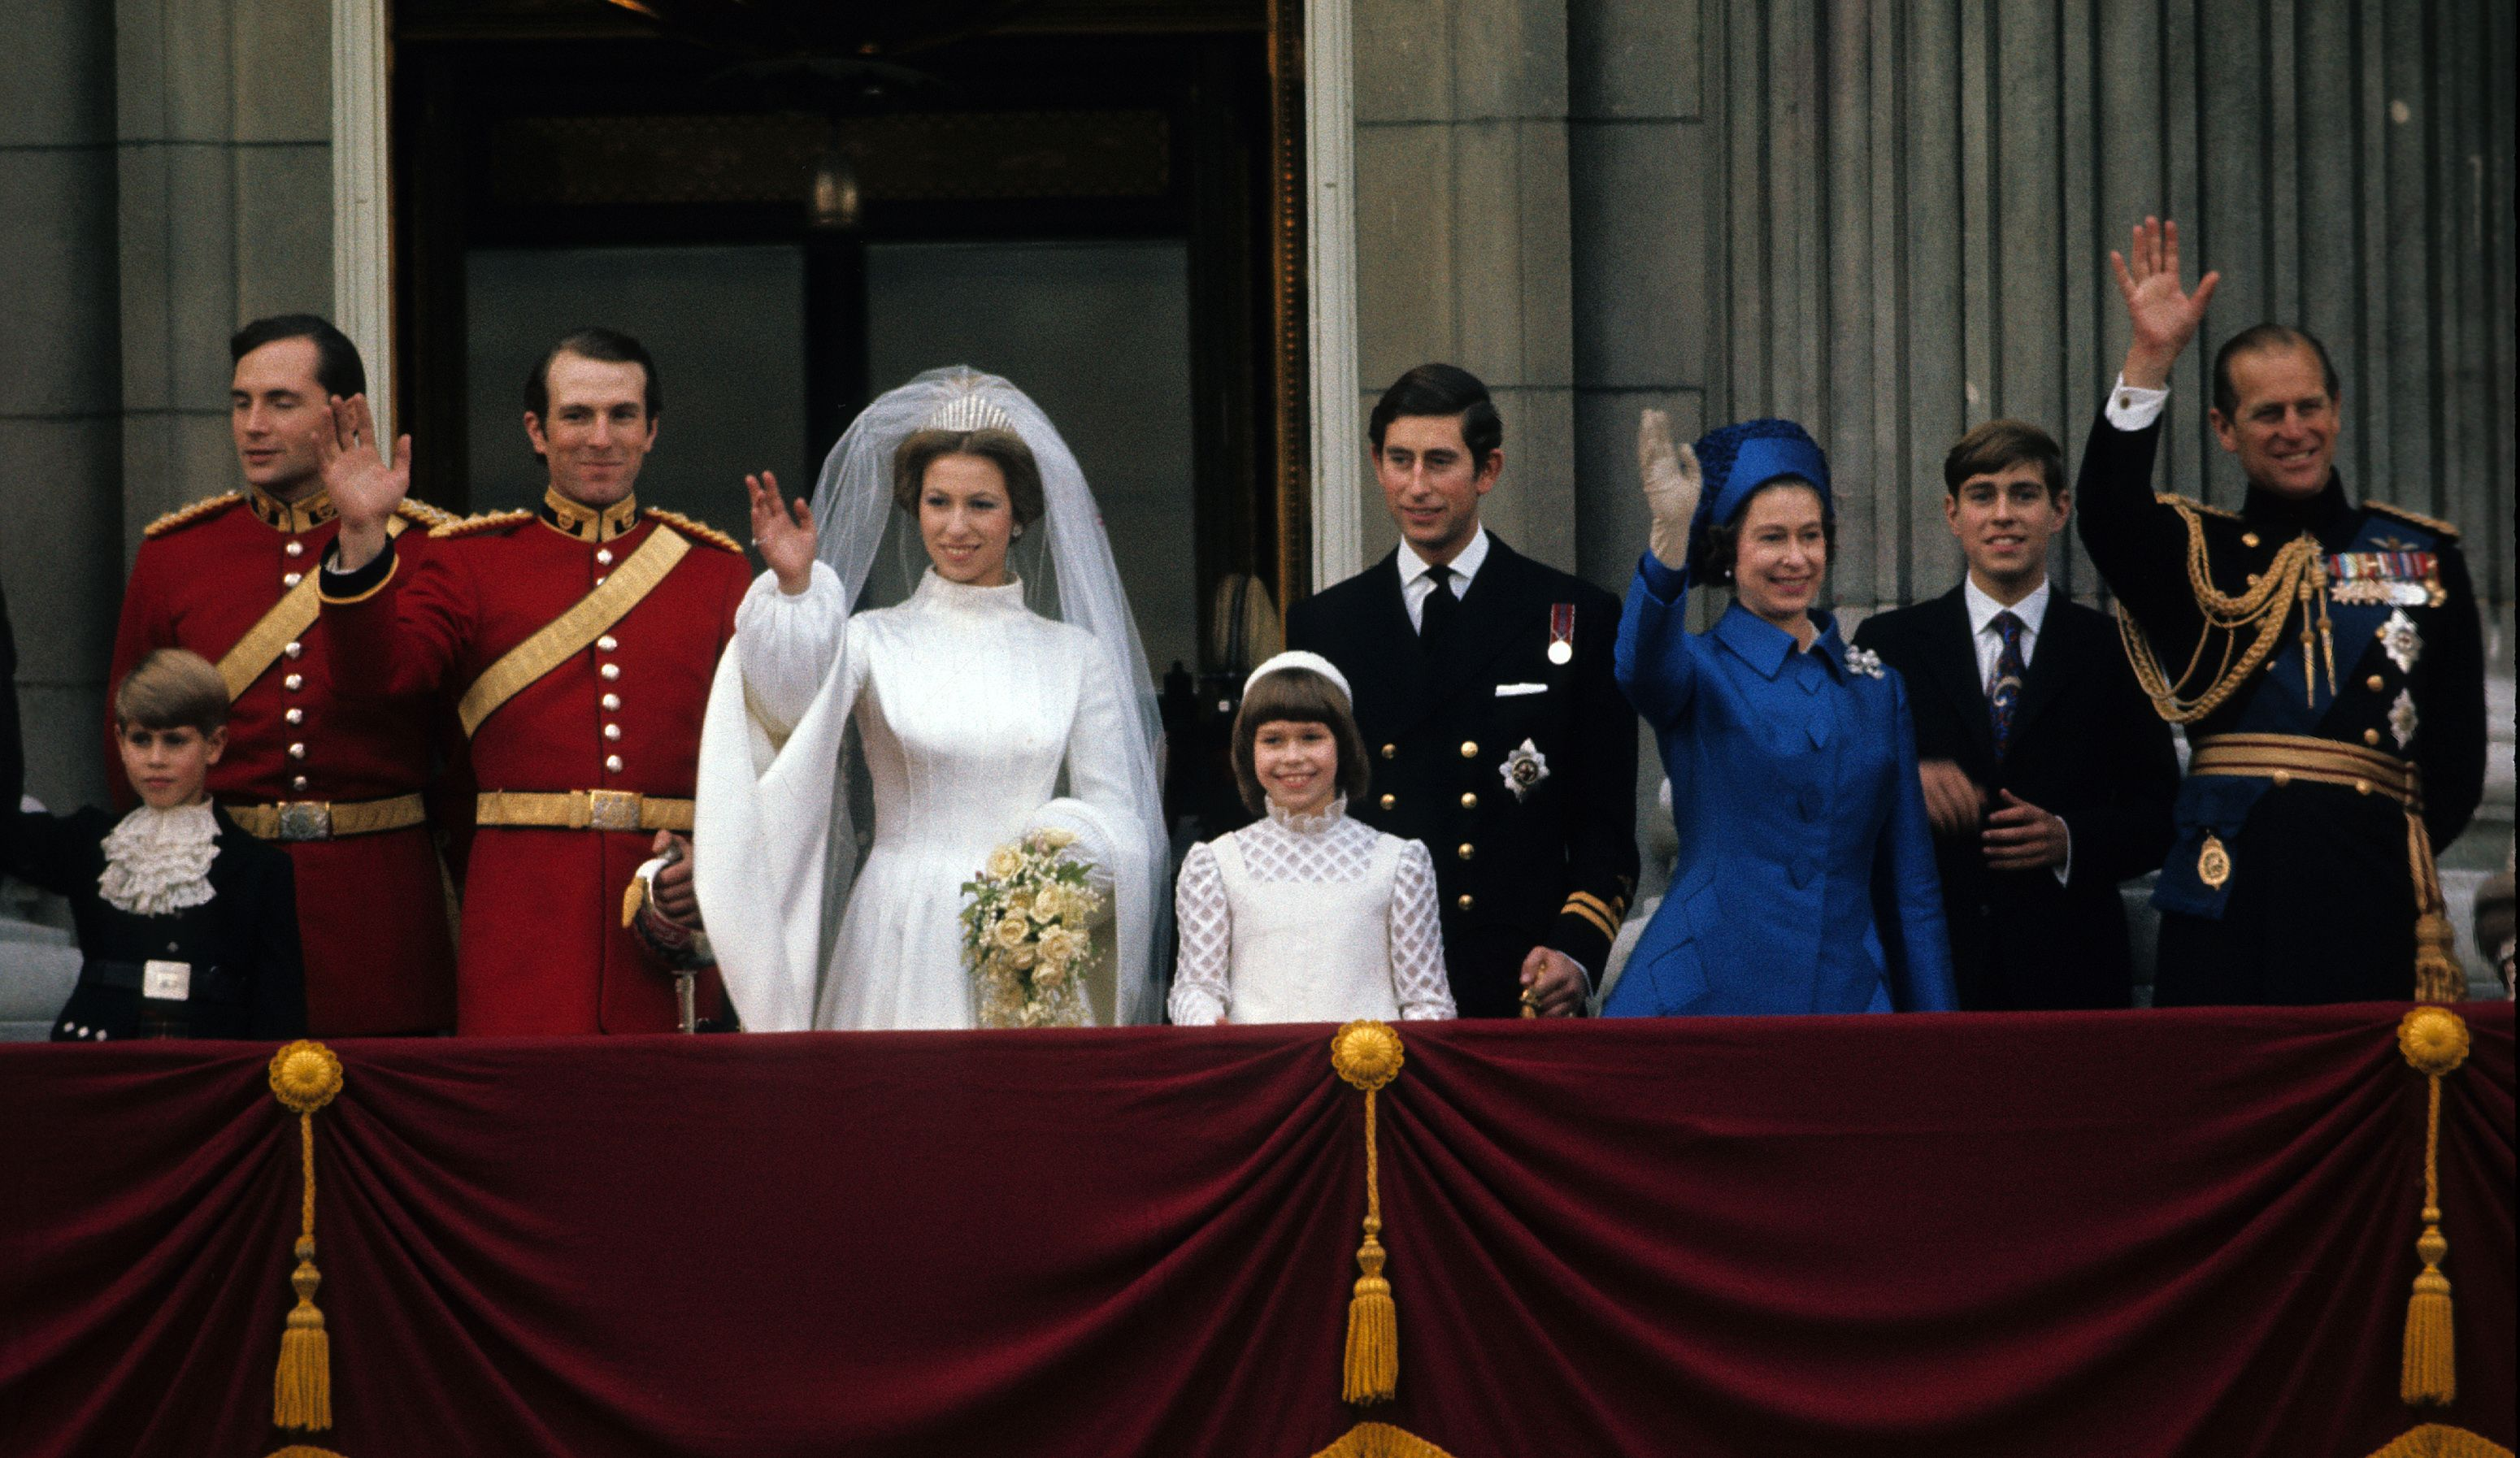 Princess Anne may be the Queen's second child, but she was the first to wed , marrying Olympic equestrian and retired military officer Mark Phillips in 1973. For her first turn as Mother of the Bride, Queen Elizabeth chose a regal blue coat dress with an inlaid diamond pattern, diamond-shaped fastenings, and a matching hat.